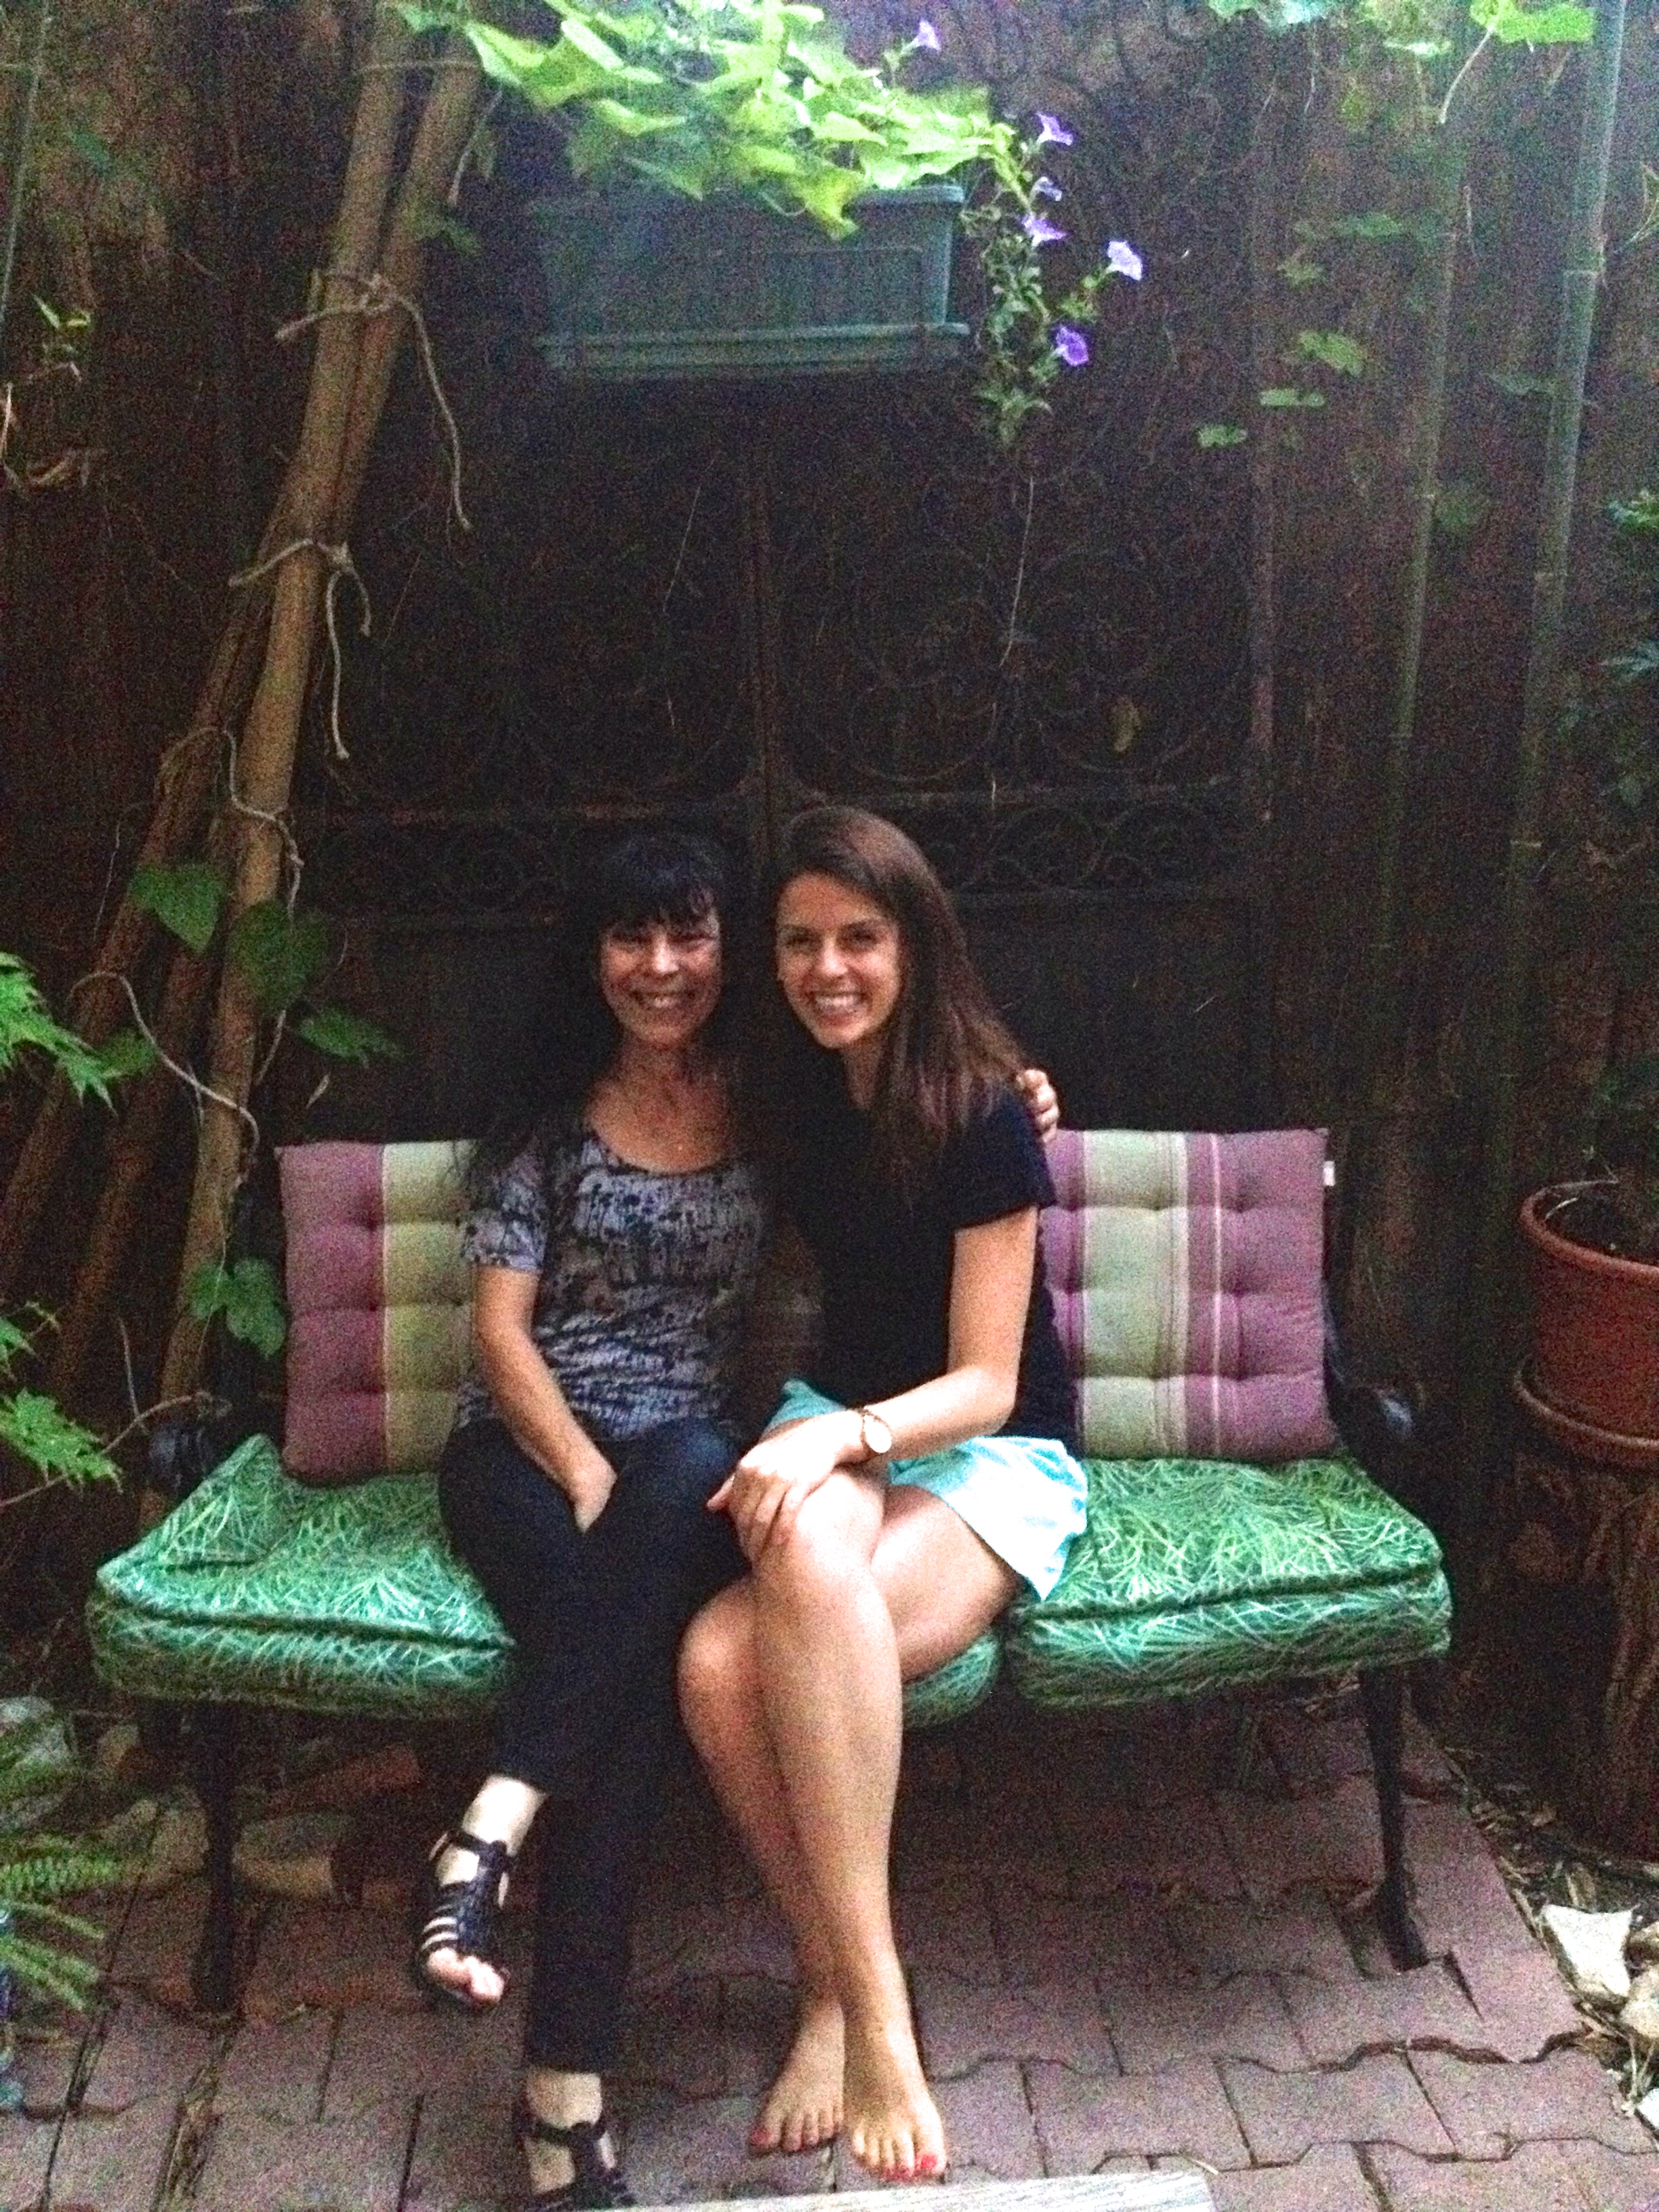 Reunited!Michèle and me in her garden.